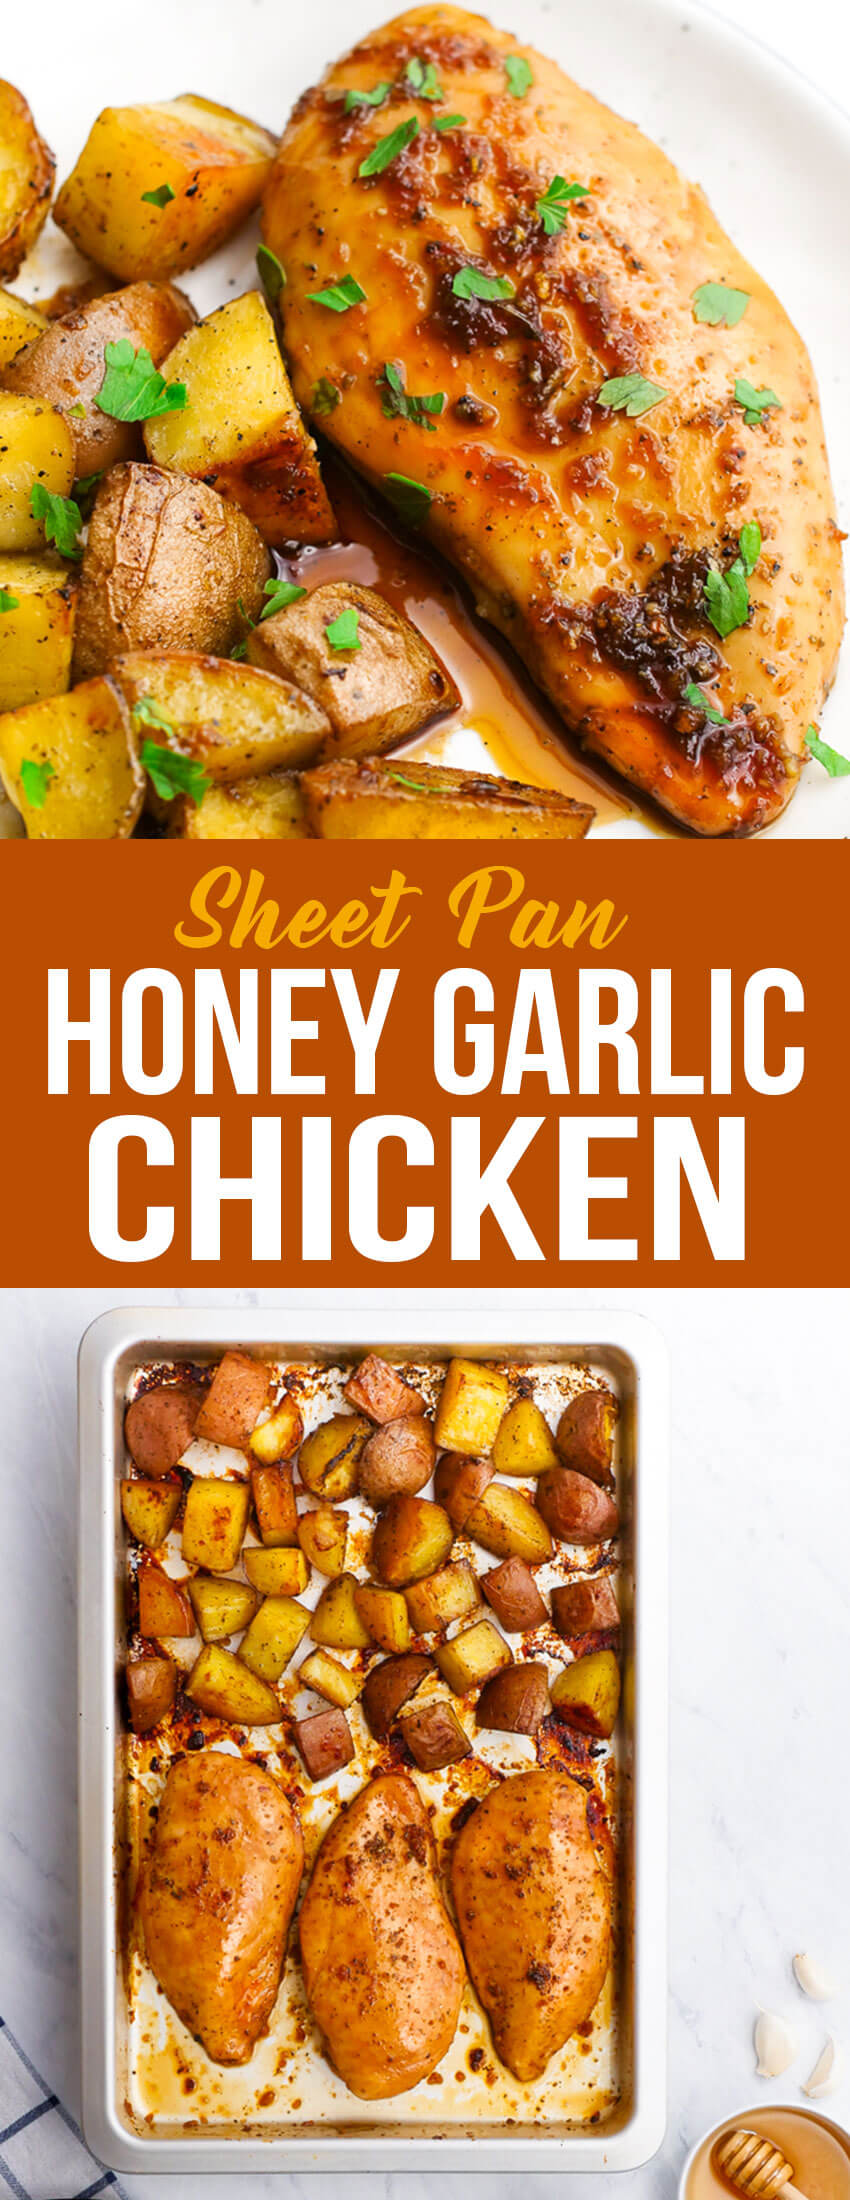 This sheet pan honey garlic chicken is a simple dish with tons of flavor.